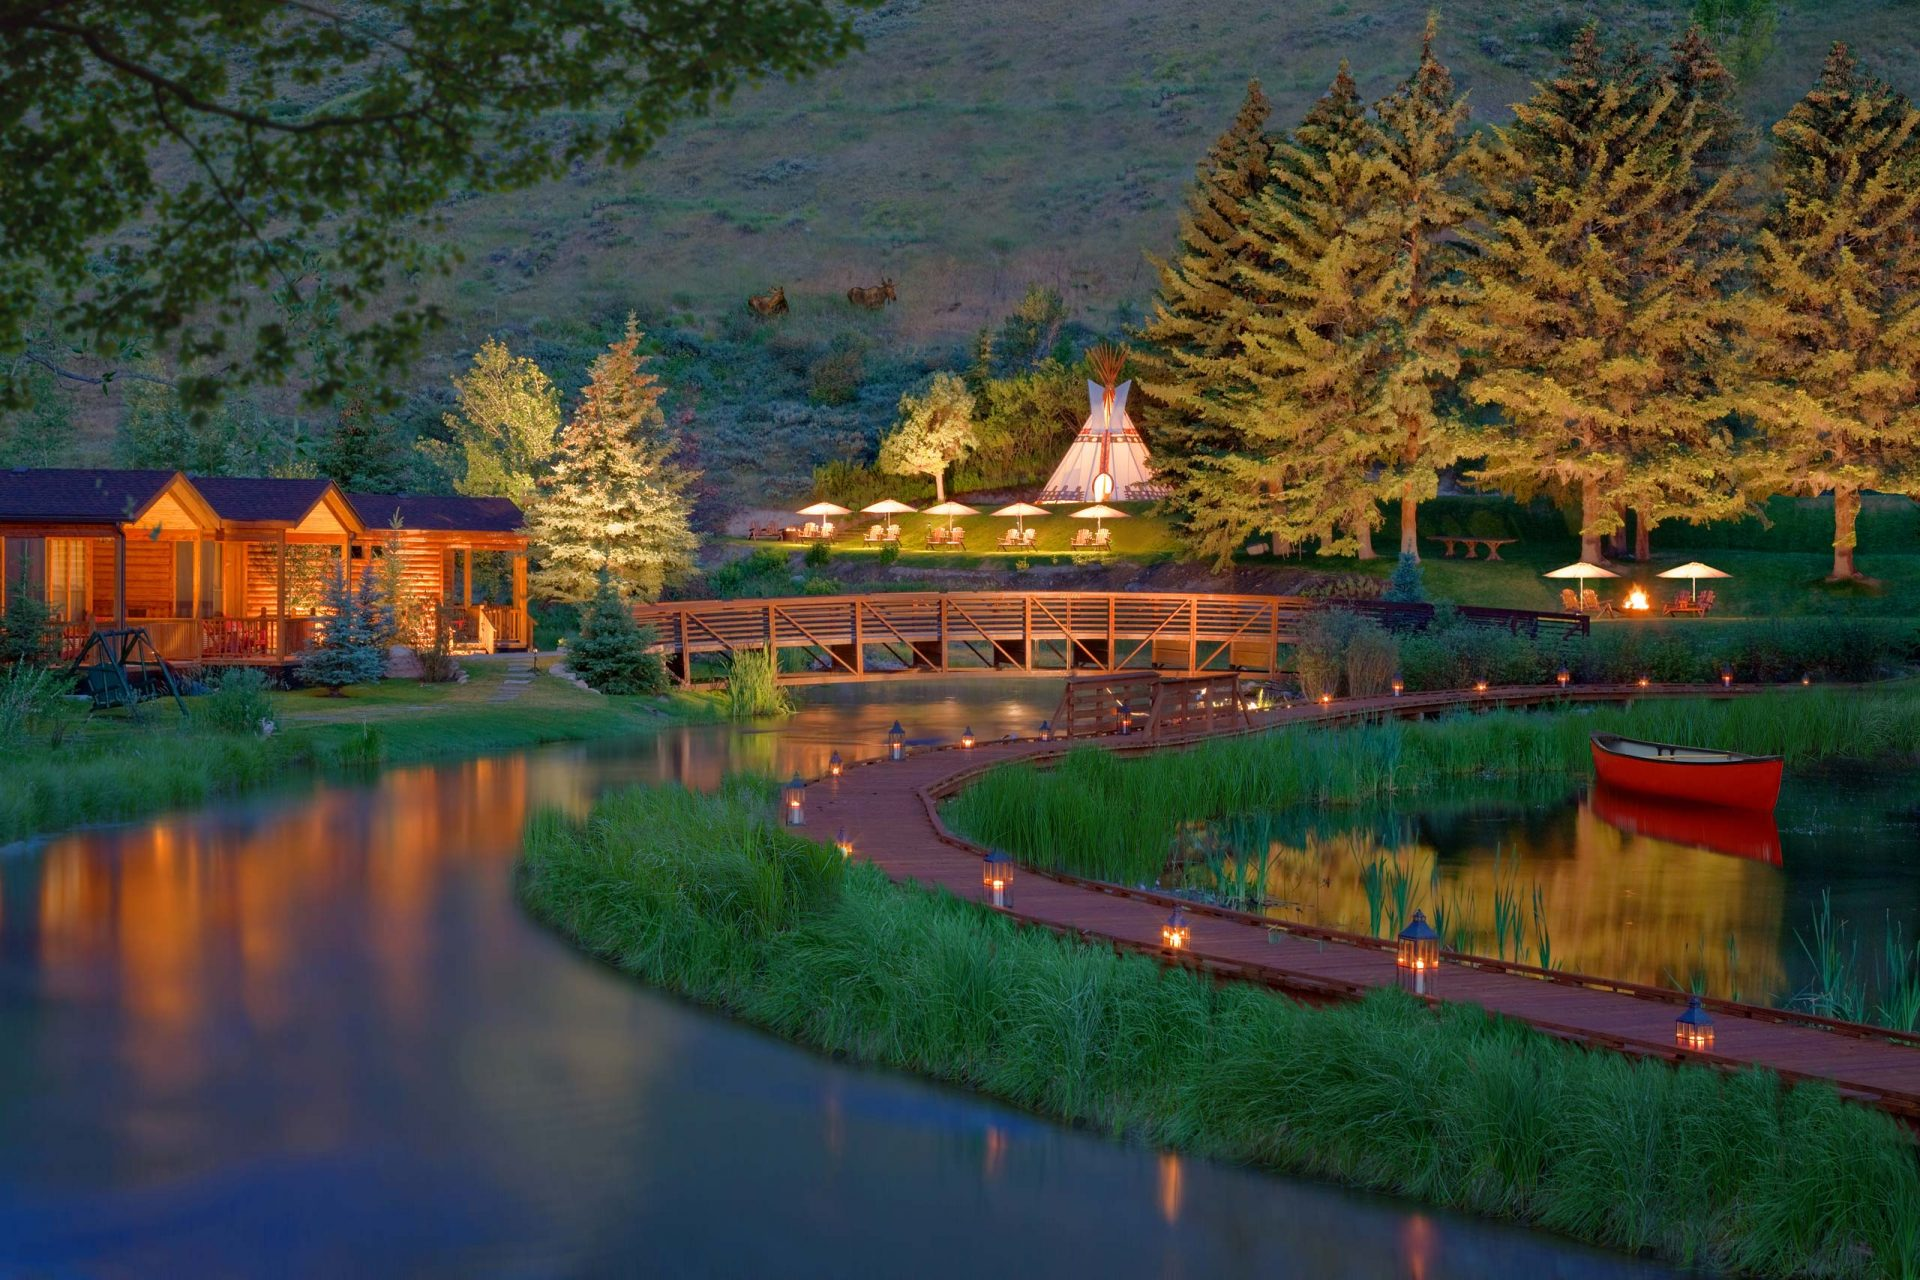 evening view of wood bridge, cabins, river and trees with moose on hill in background